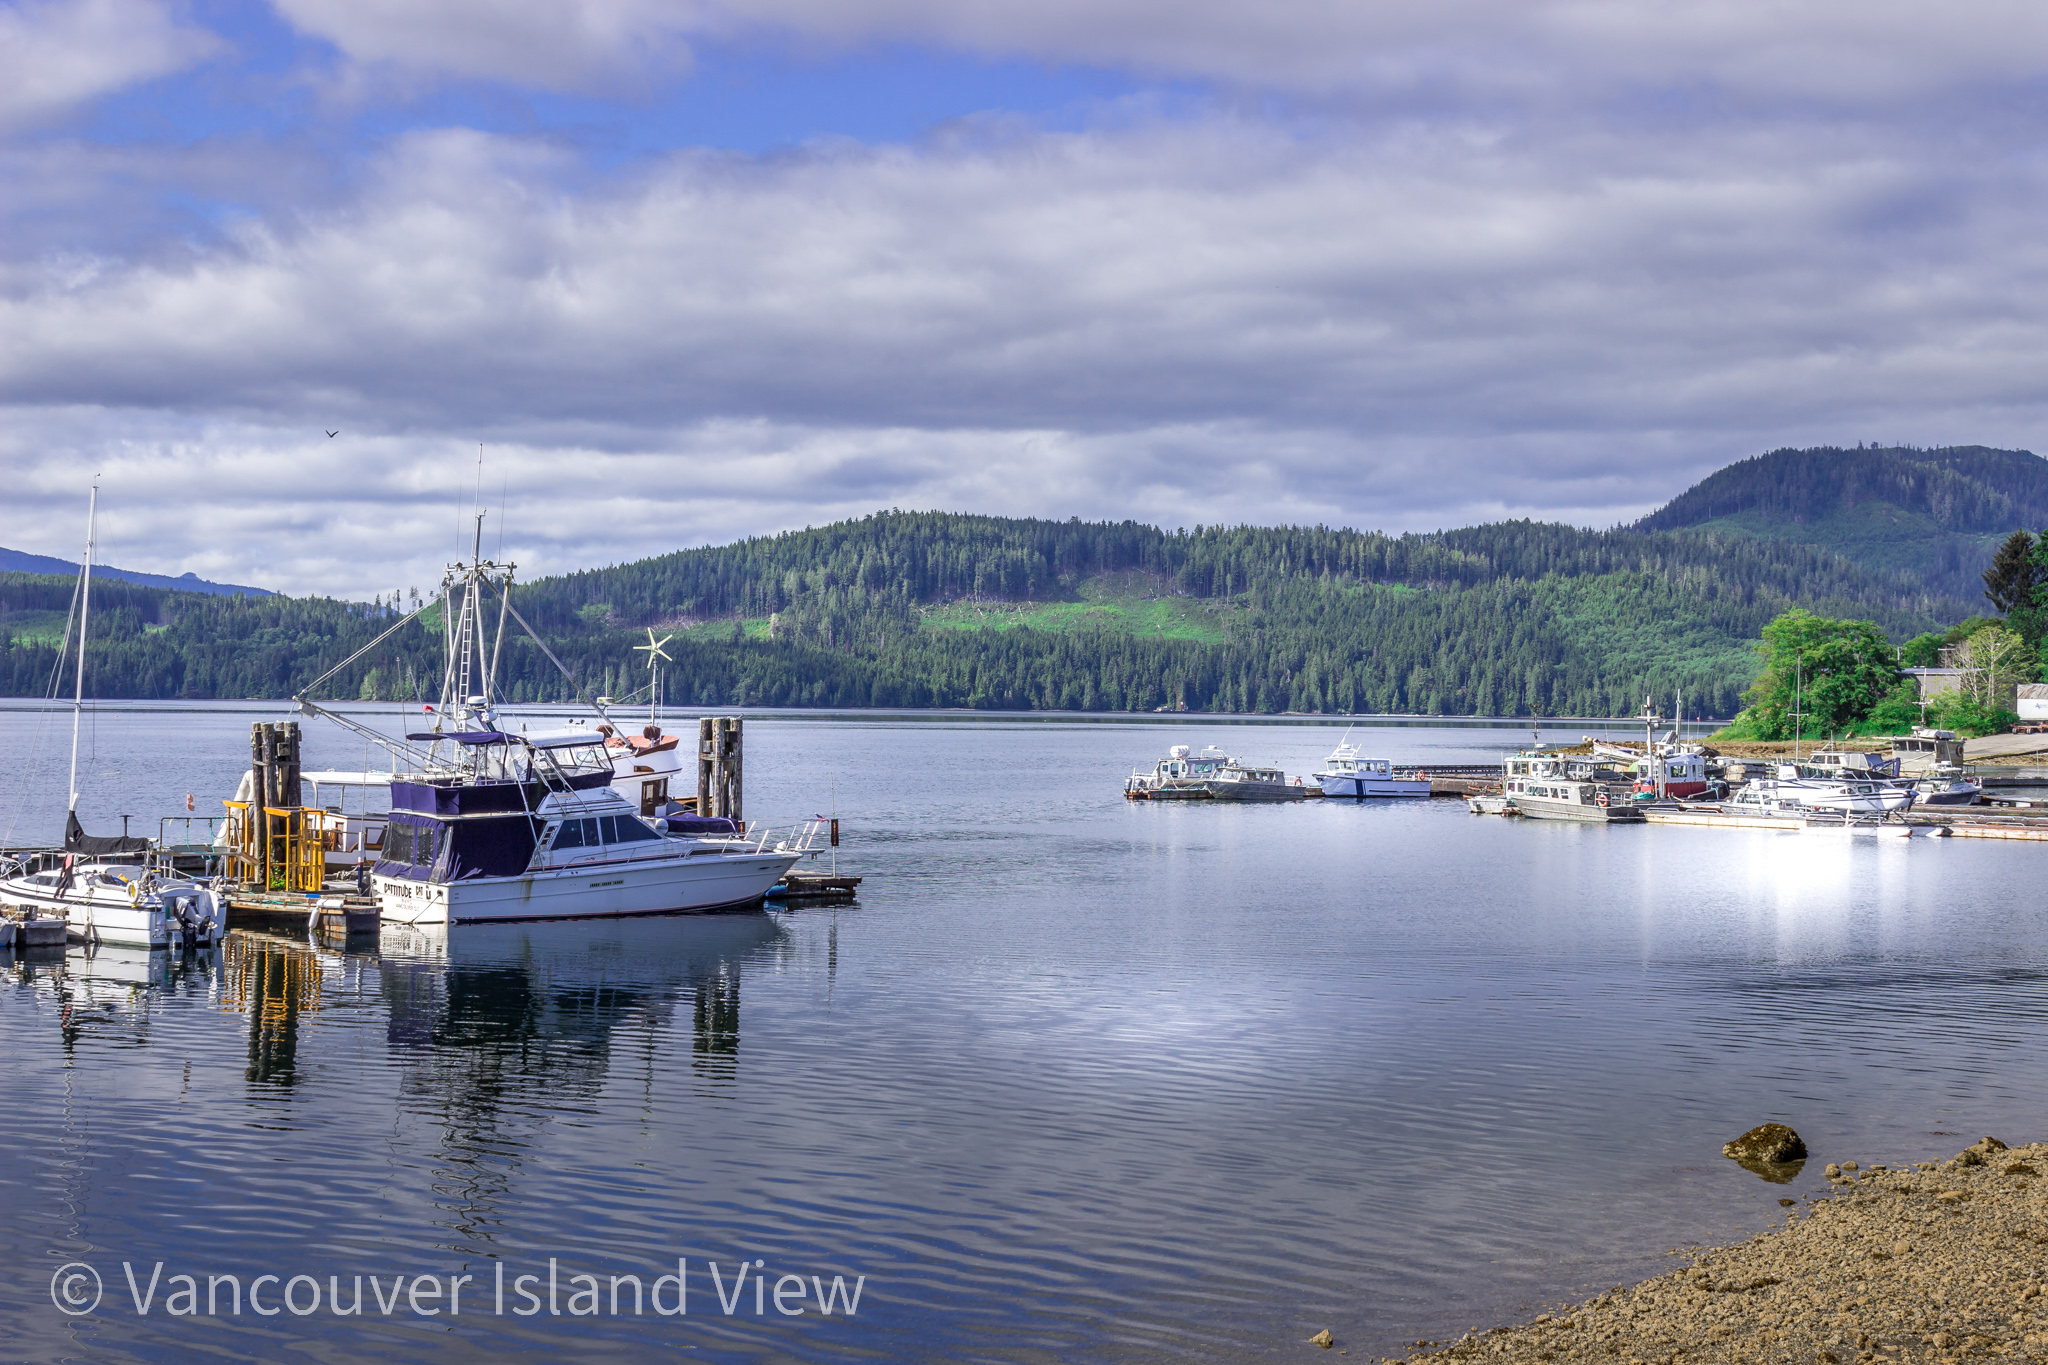 View from Coal Harbour. Vancouver Island View